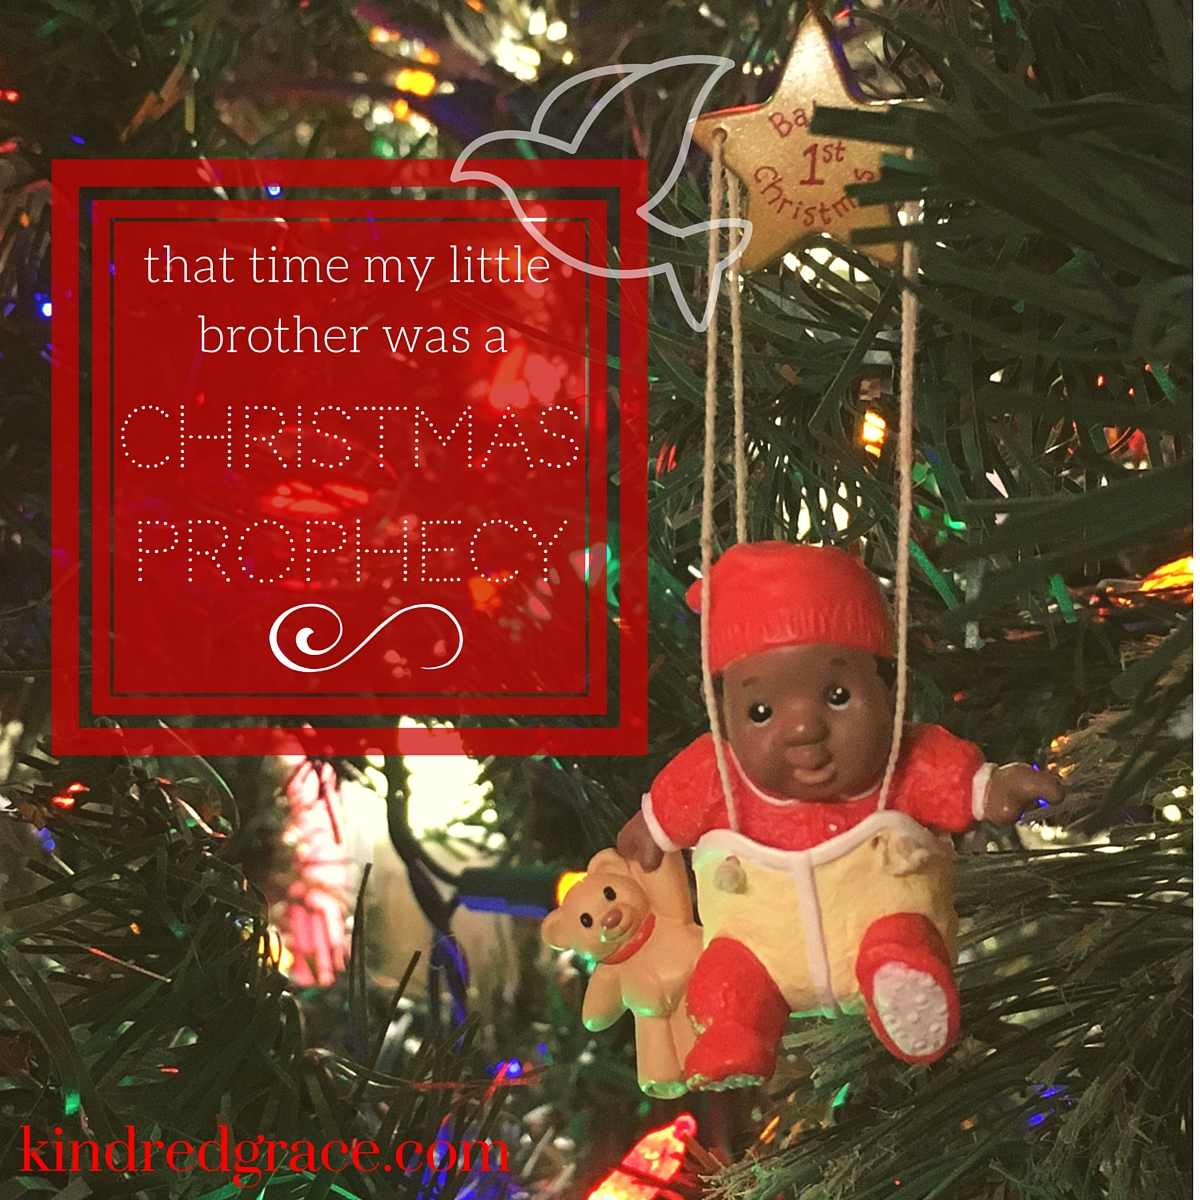 the time my brother was a christmas prophecy, a post by everly pleasant at kindredgrace.com